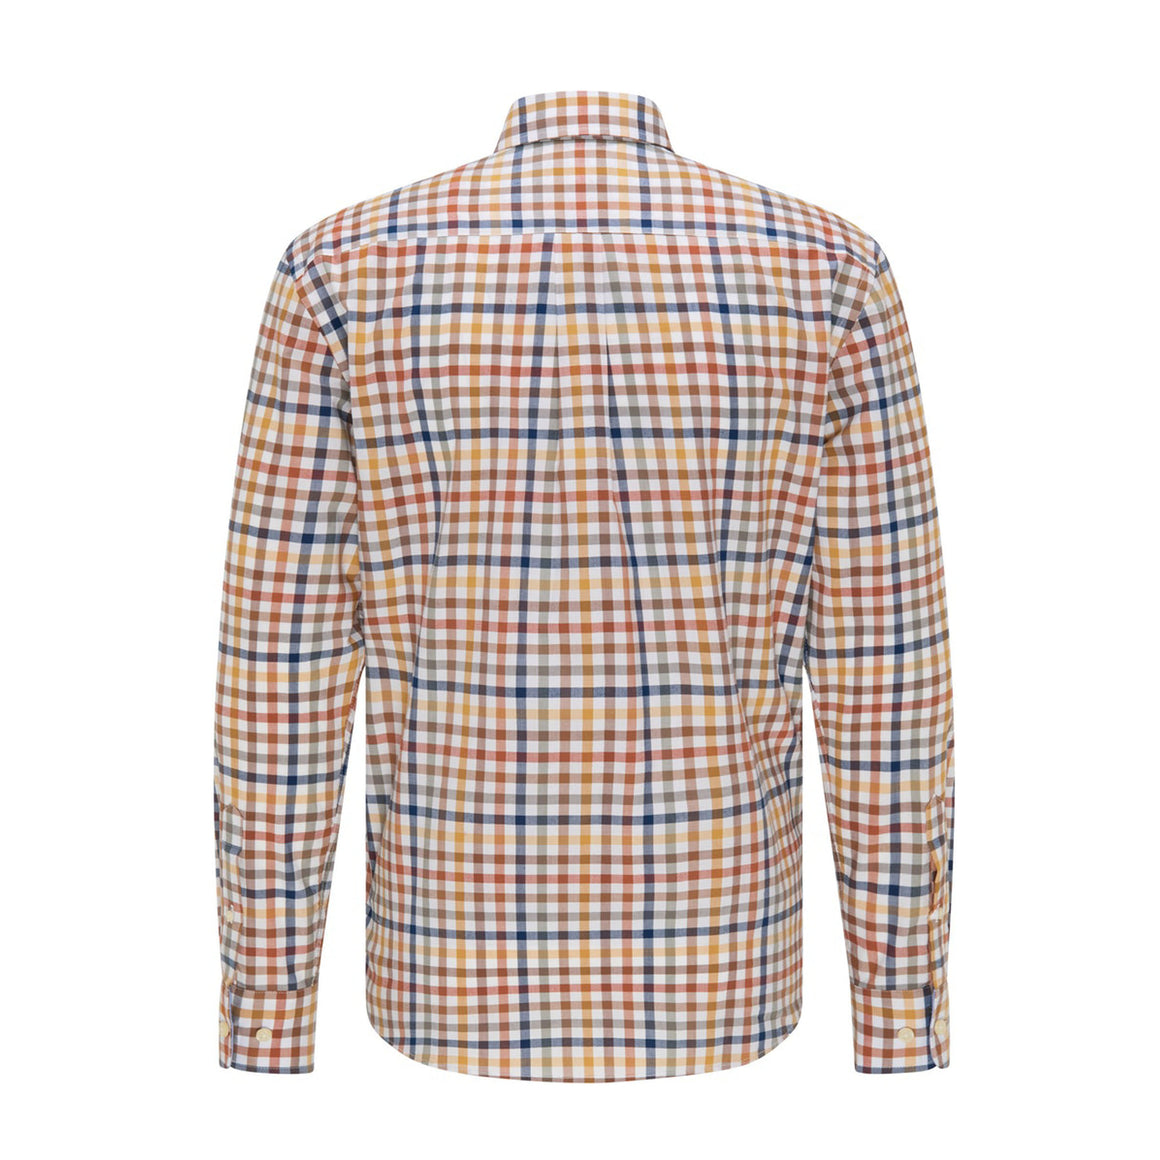 Supersoft Combi Check Shirt for Men in Toscana Taupe